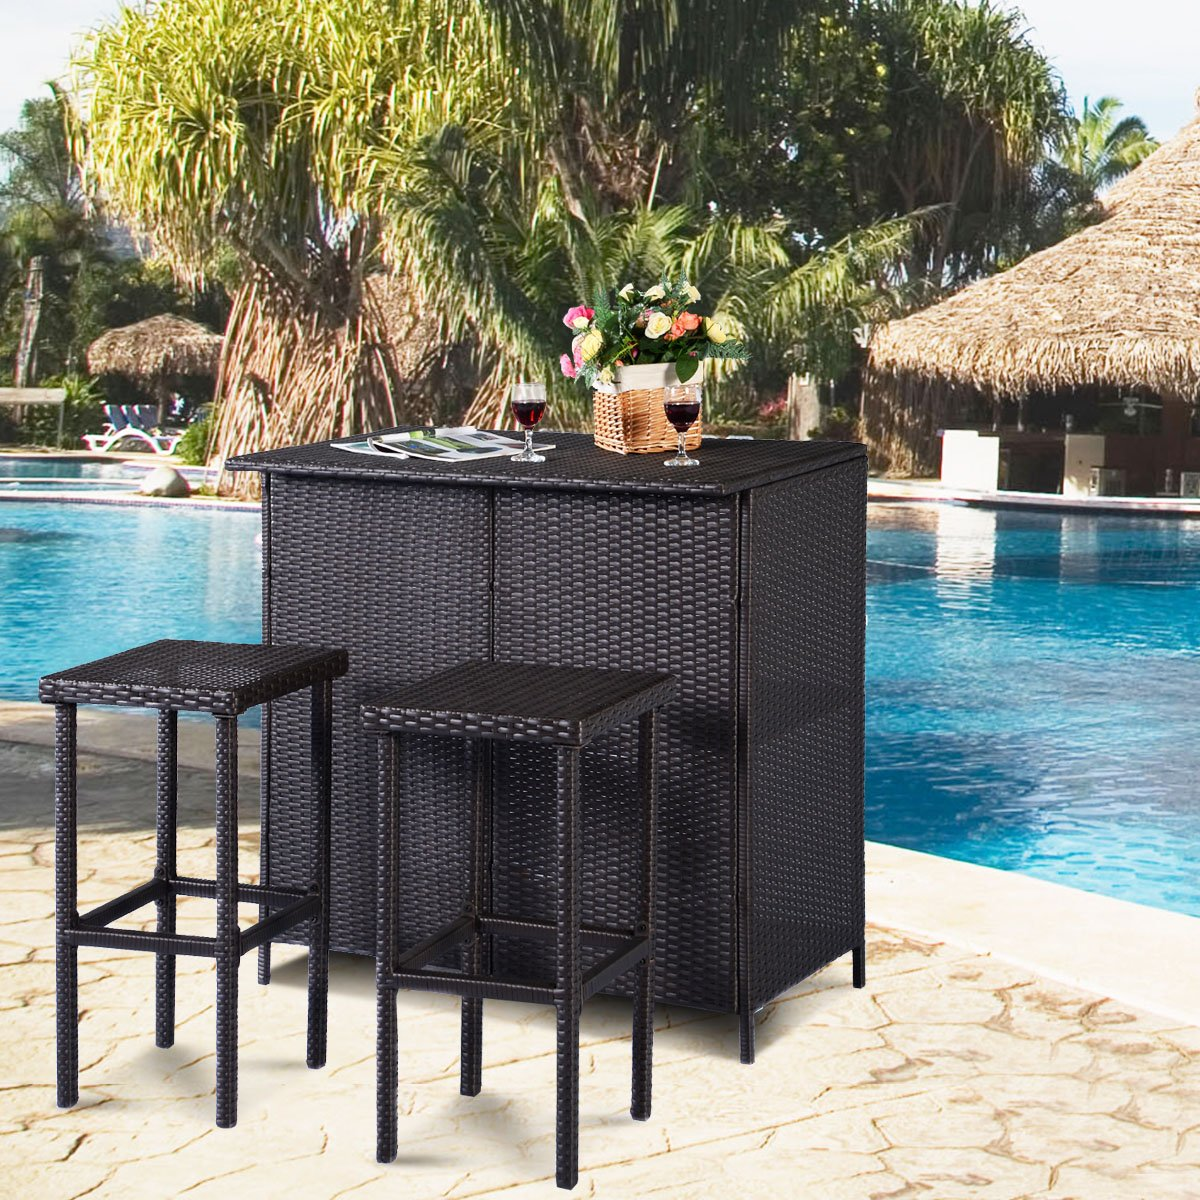 tangkula piece patio bar set rattan wicker stools storage accent table for lawn pool backyard garden dining with shelves indoor outdoor moder plexi coffee astoria leick corner